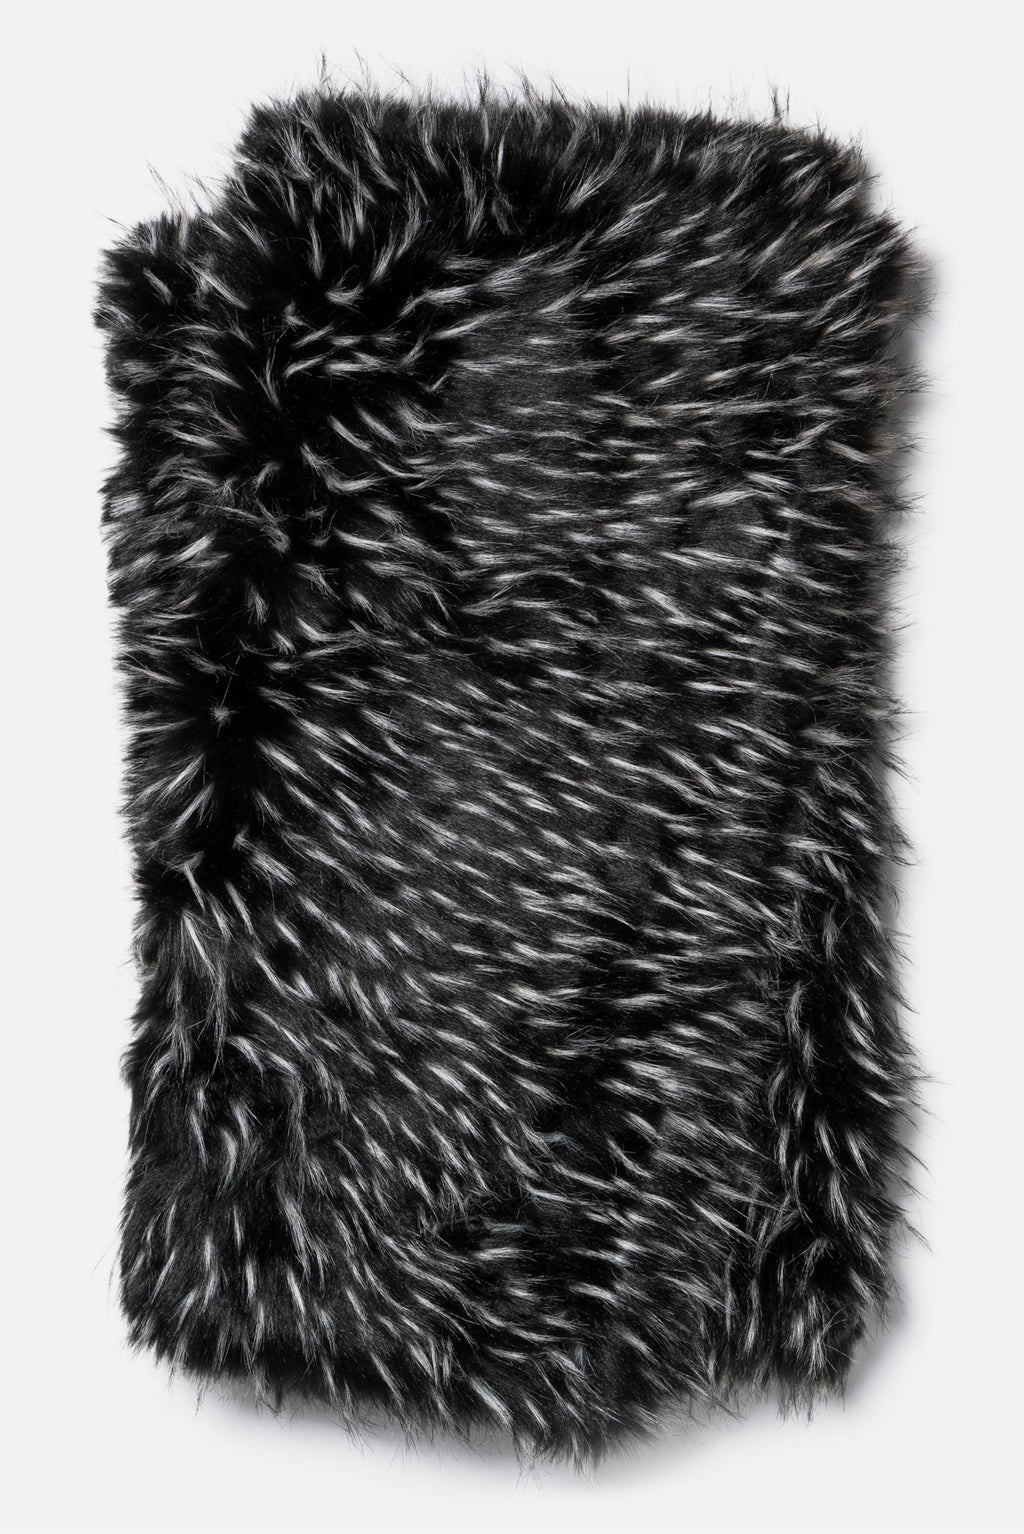 Plateau - T0005 Black / White - Throw - WORLD OF RUGS